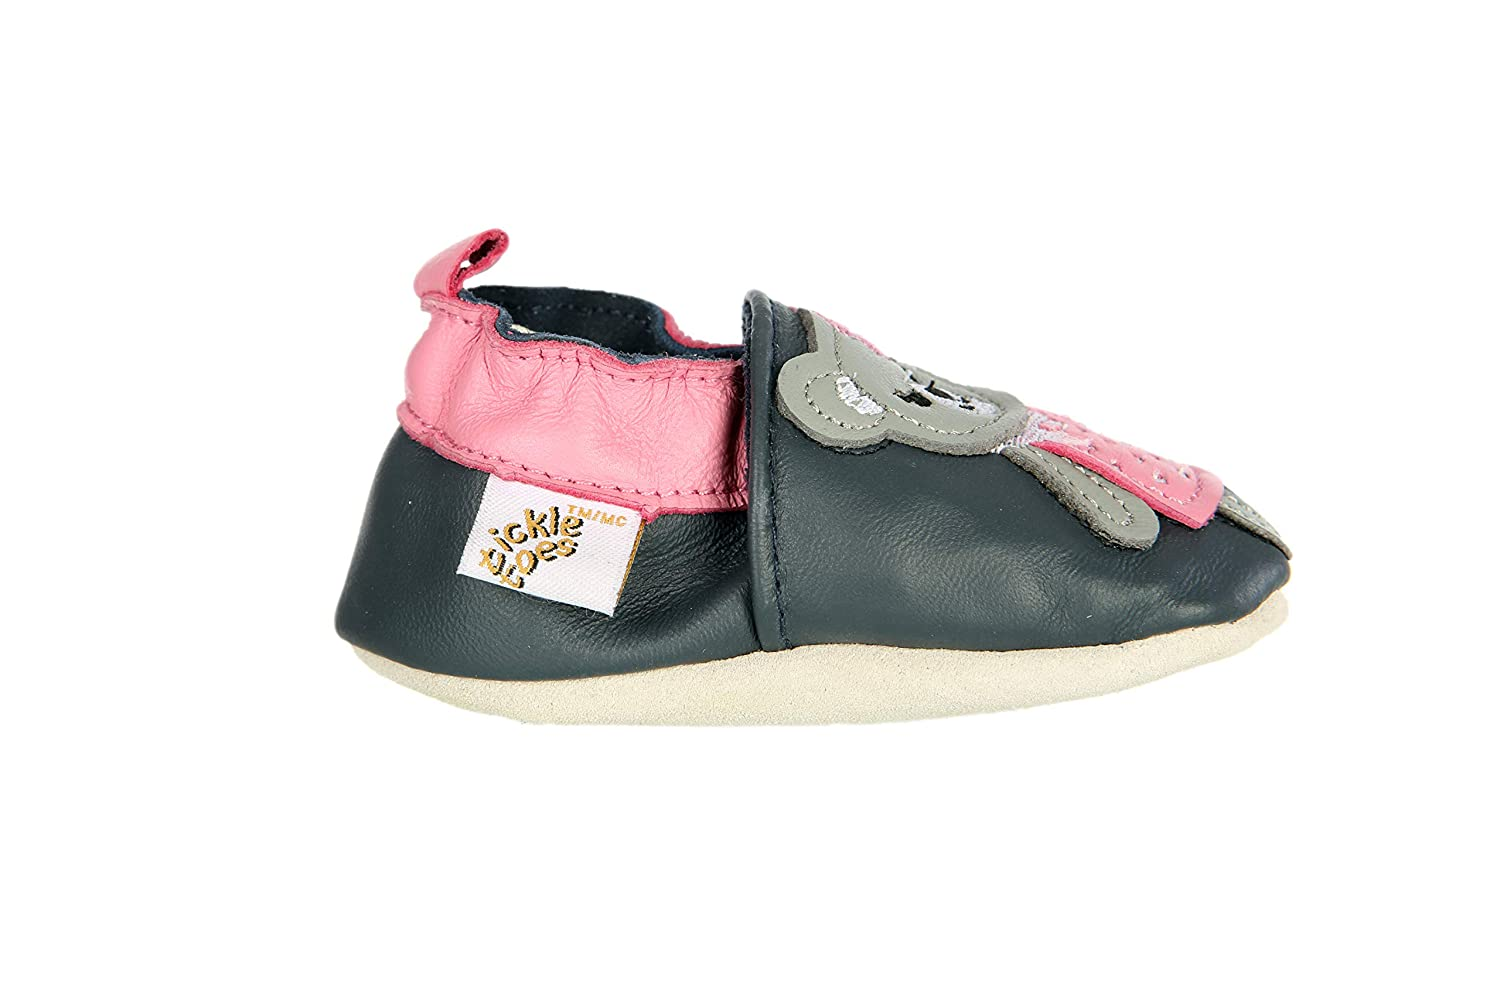 06-12 Tickle Toes Navy Pink Teddy Bear Soft Leather Shoes 6797